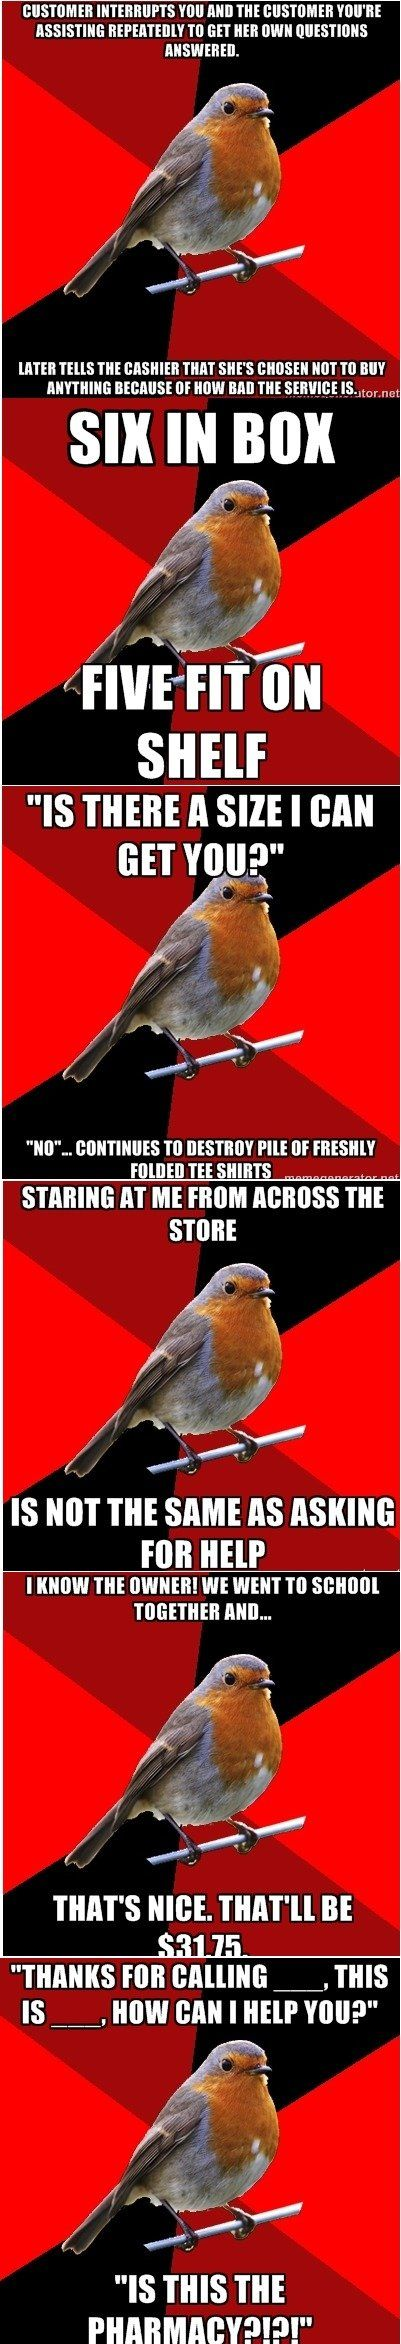 "Retail Robin bahaha staring at me from across the store is not the same as asking for help. ""That's nice. That'll be..."" Allllll day long. Hahahahah"